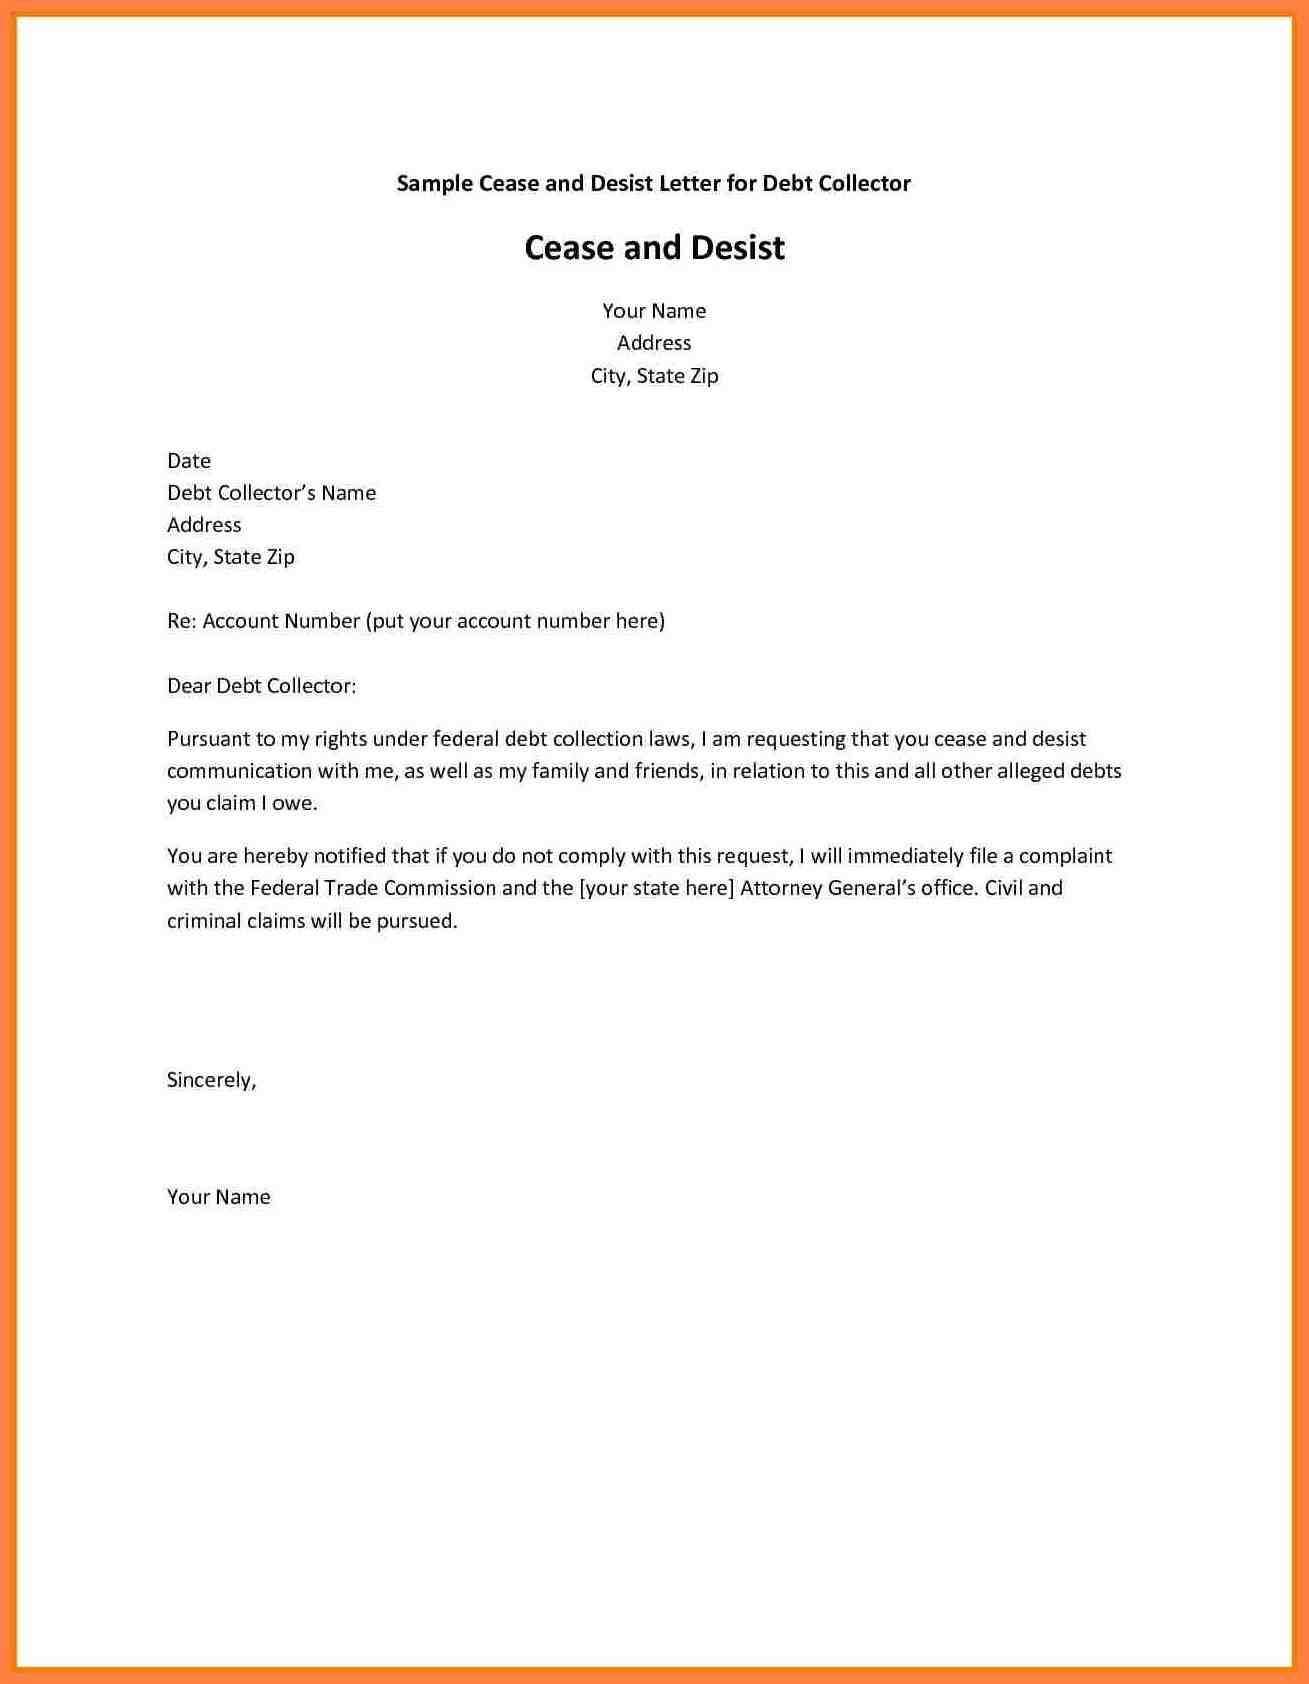 Creditor Cease and Desist Letter Template - Cease and Desist Letter Sample Lovely Best Debt Collection Cease and